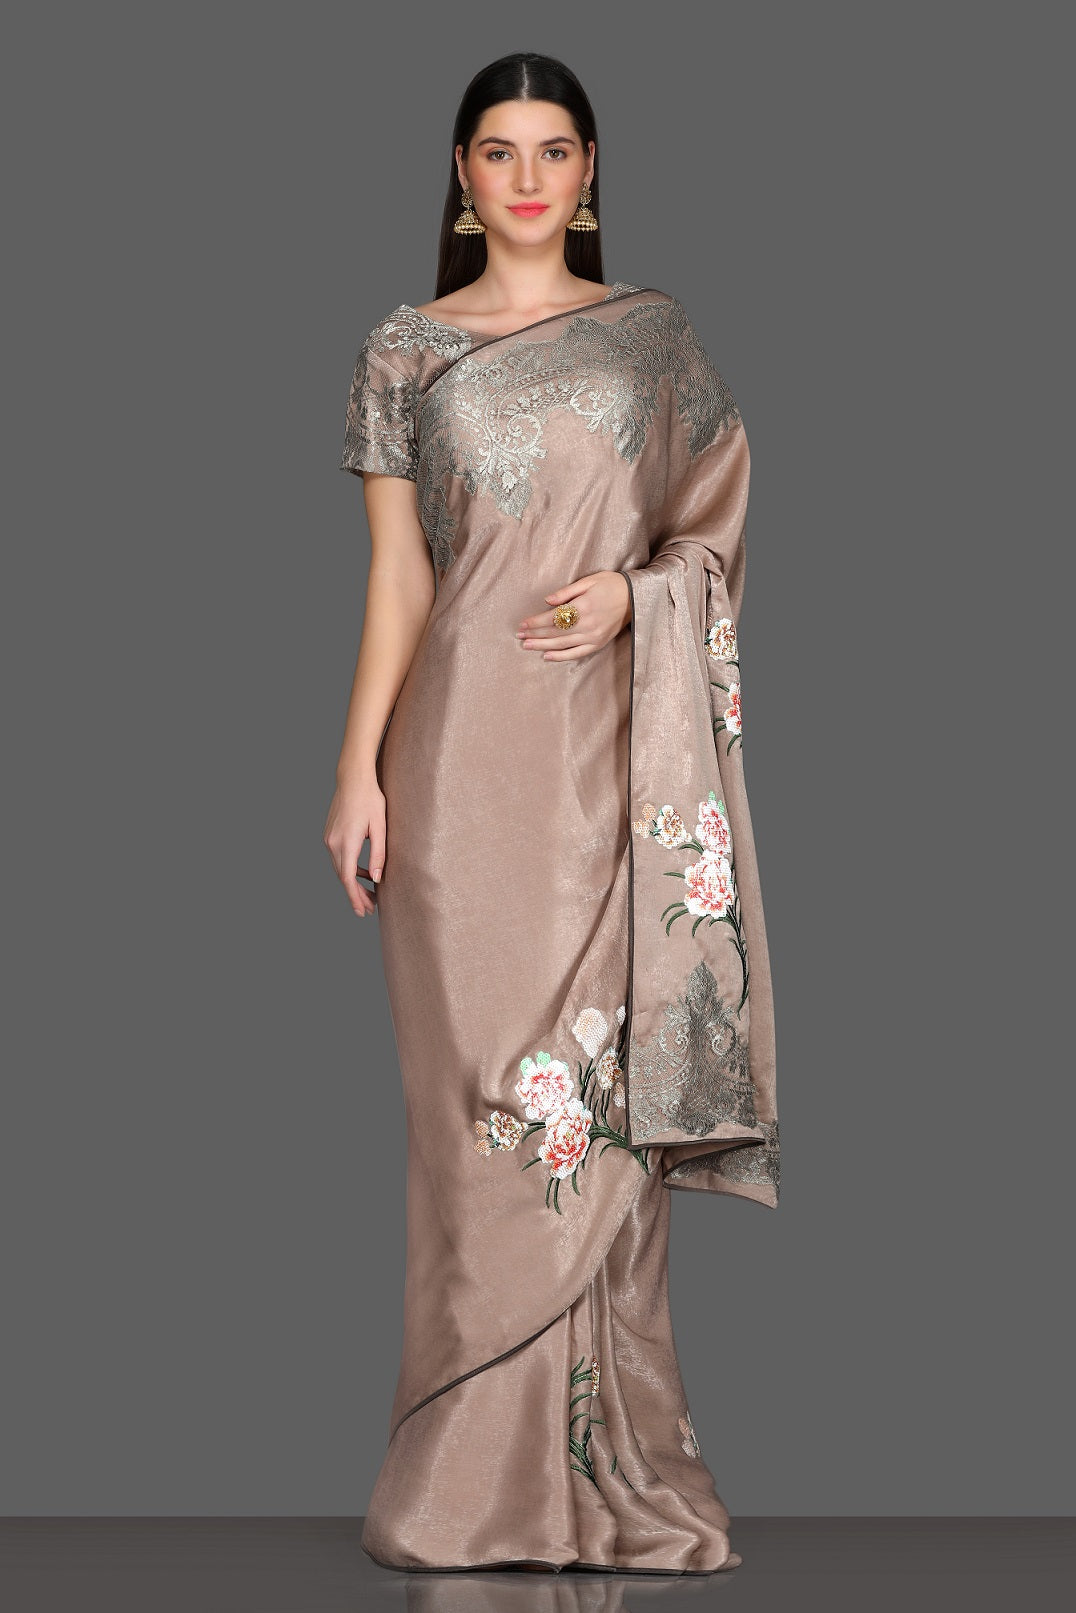 Buy lovely beige embroidered designer sari online in USA with embroidered saree blouse. Make a fashion statement at parties with stunning designer sarees from Pure Elegance Indian fashion store in USA.-full view